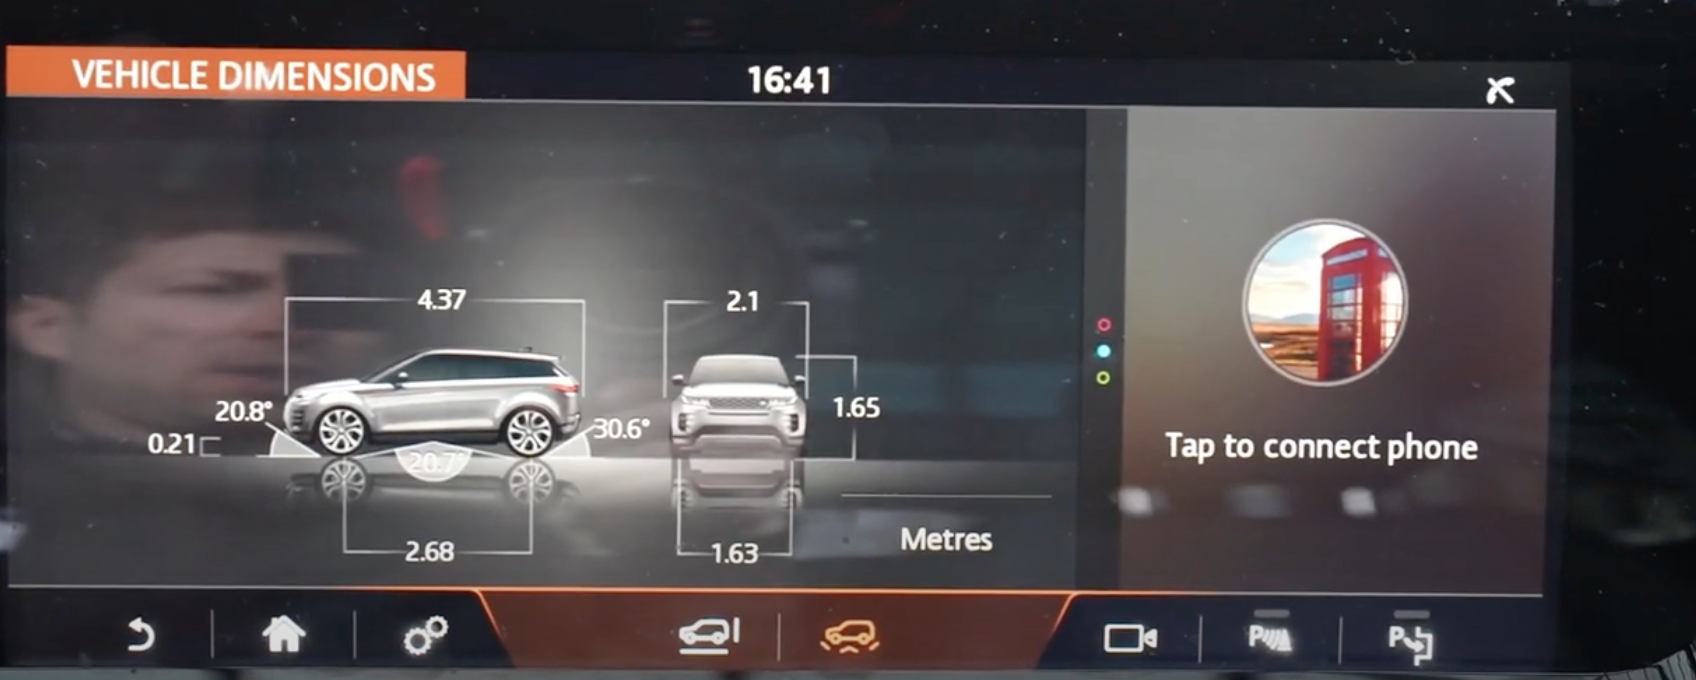 Vehicle dimensions in metres with the front and side view of a car